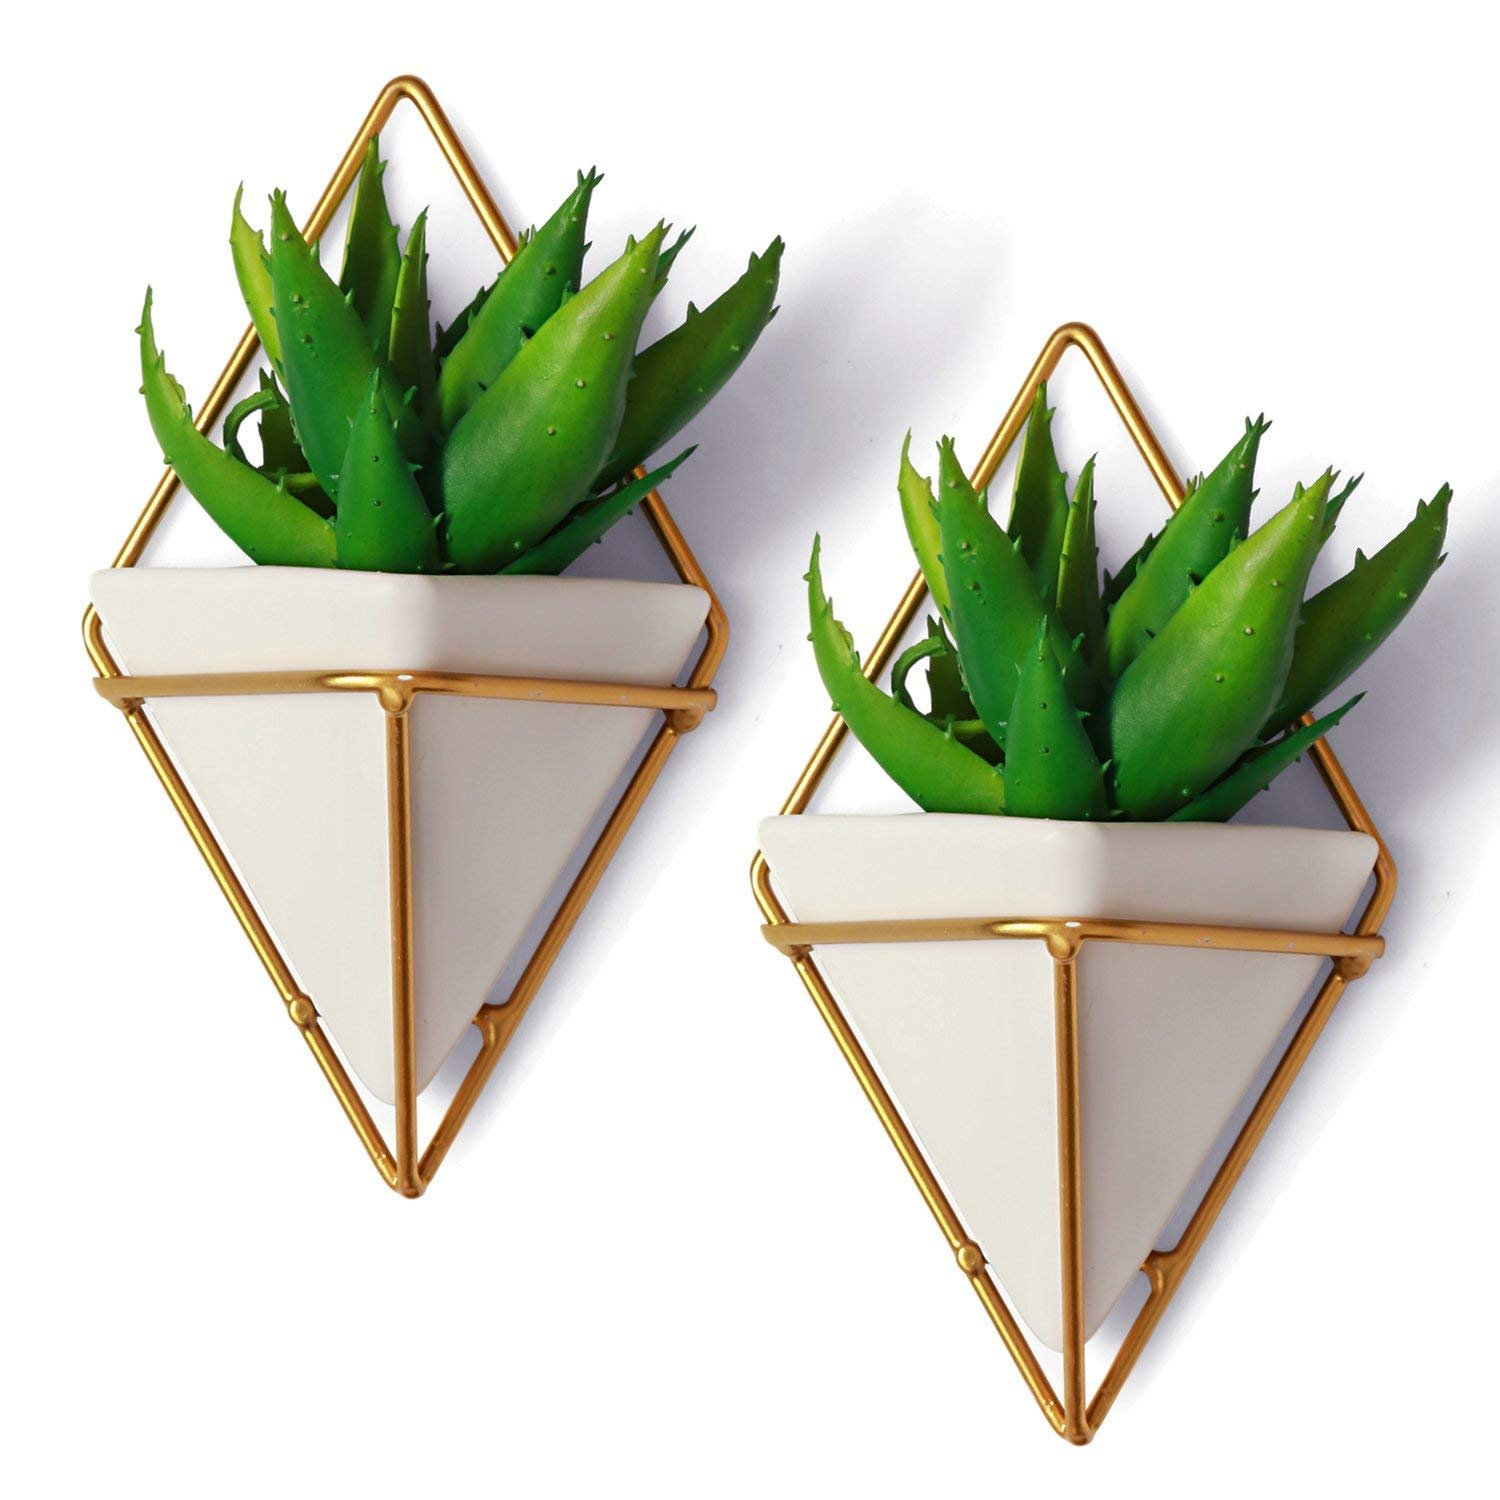 2 Small Decorative Geometric Hanging Planters Pot for Indoor Wall Decor, Planter for Succulent Plants, Air Plant, Cacti, Faux/Artificial Plants, White Ceramic/Brass